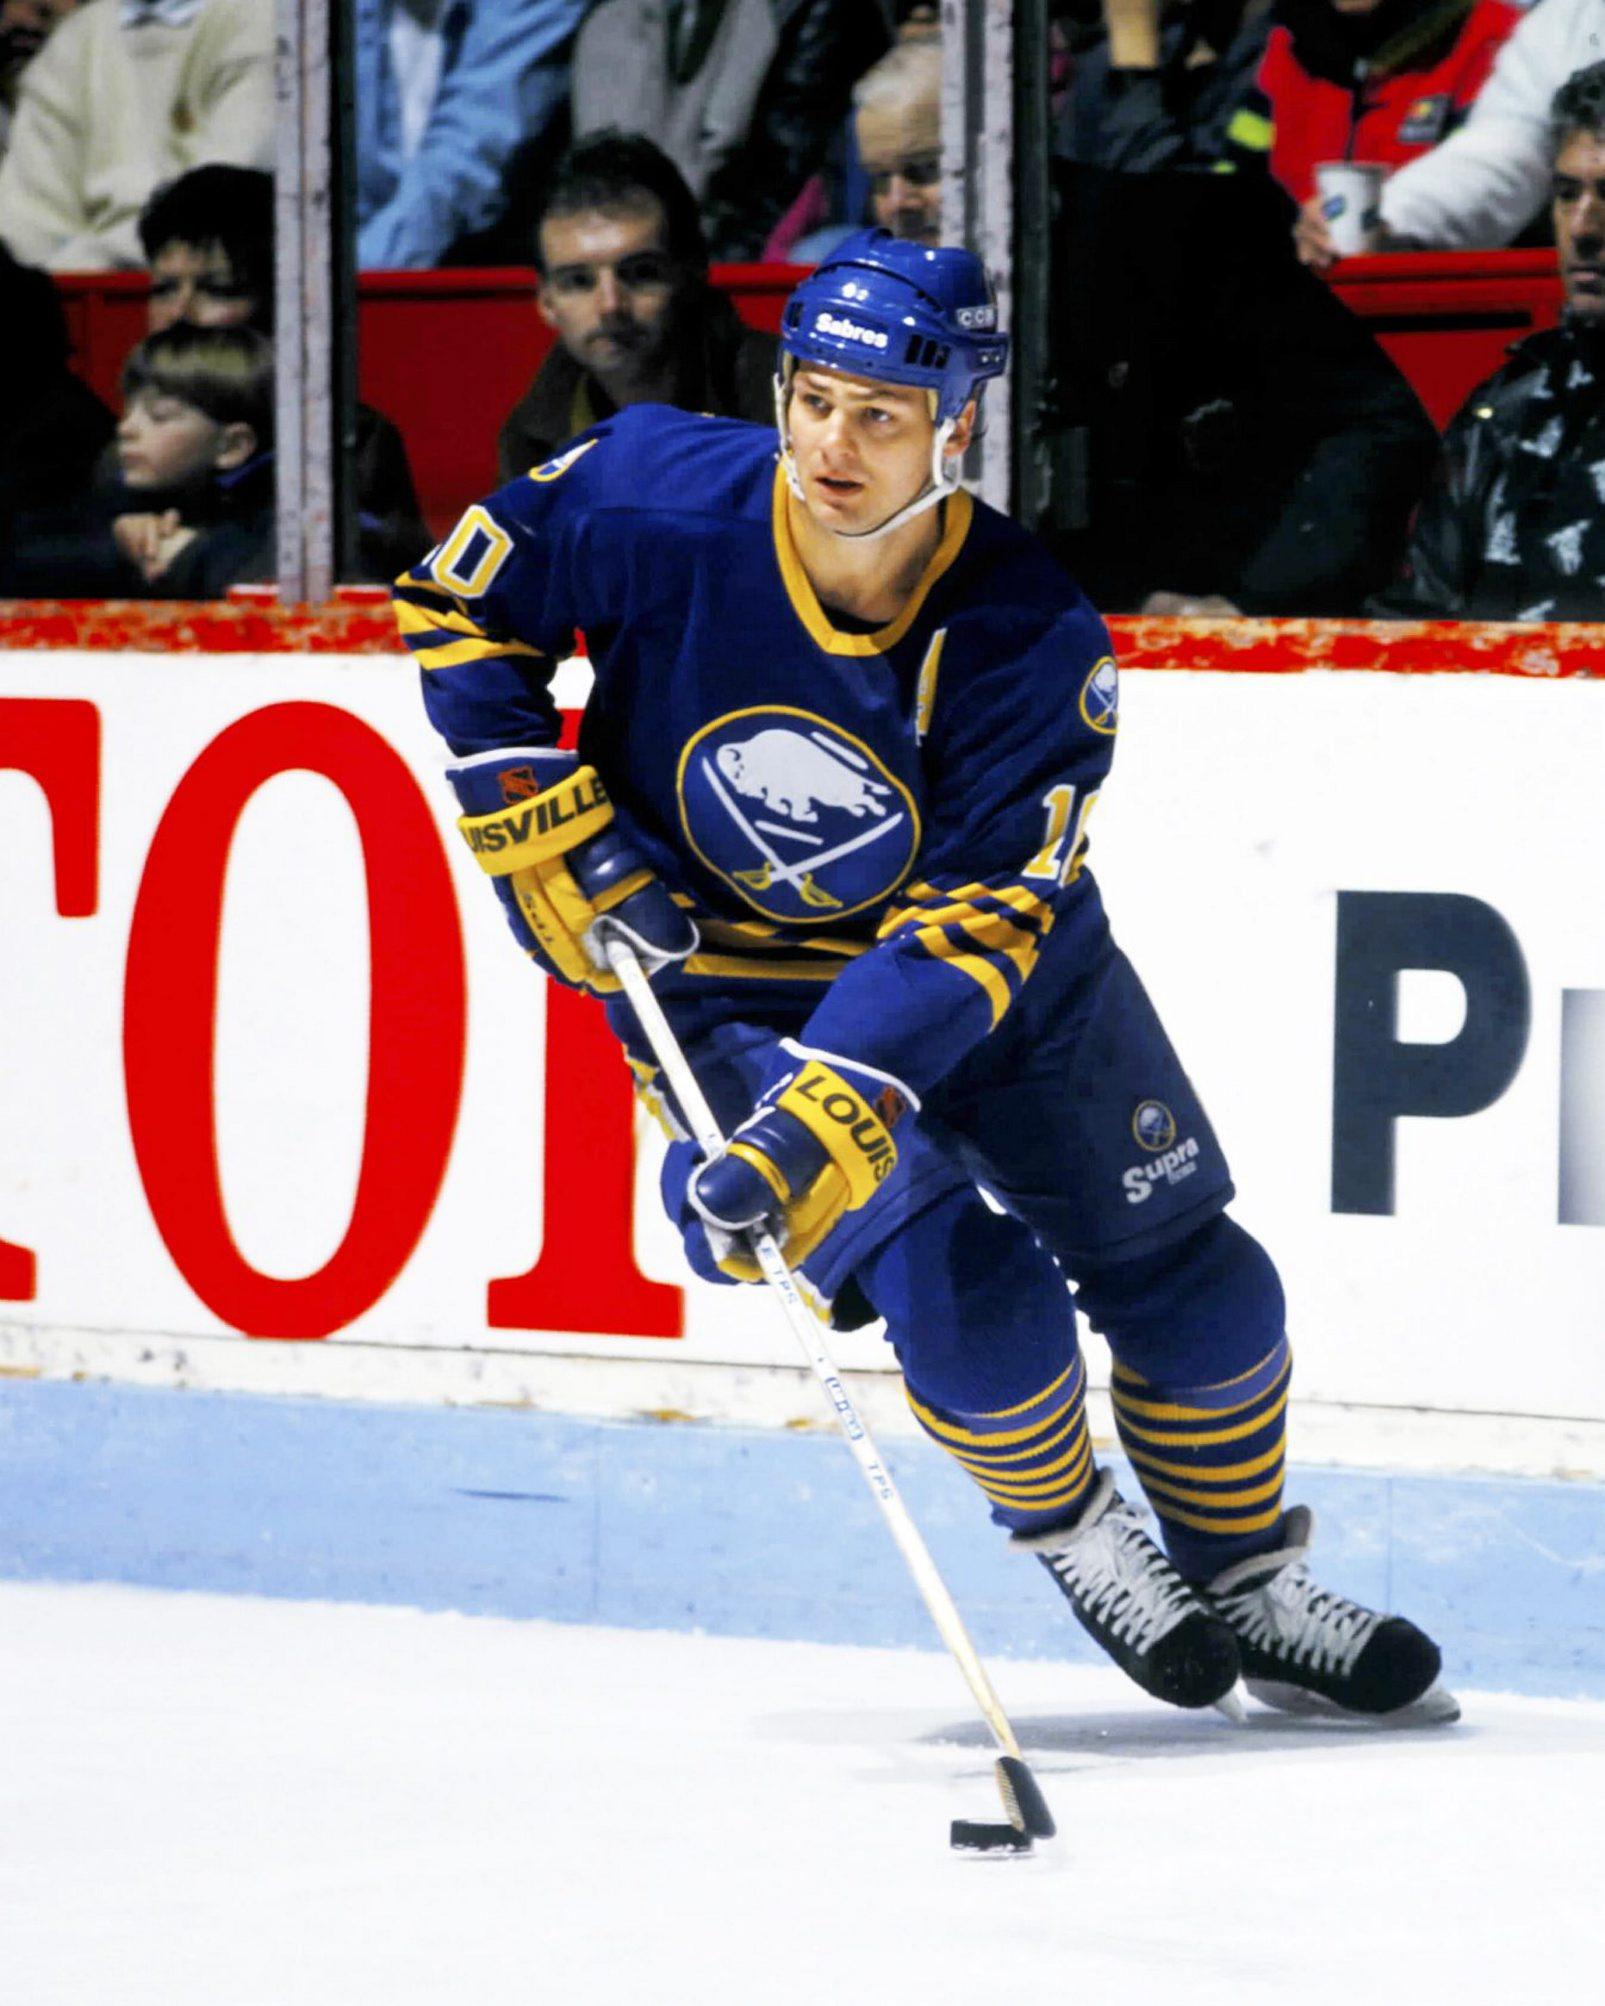 Dale Hawerchuk is one of two Sabres who have had success while wearing the No. 10. Craig Ramsay is the other.